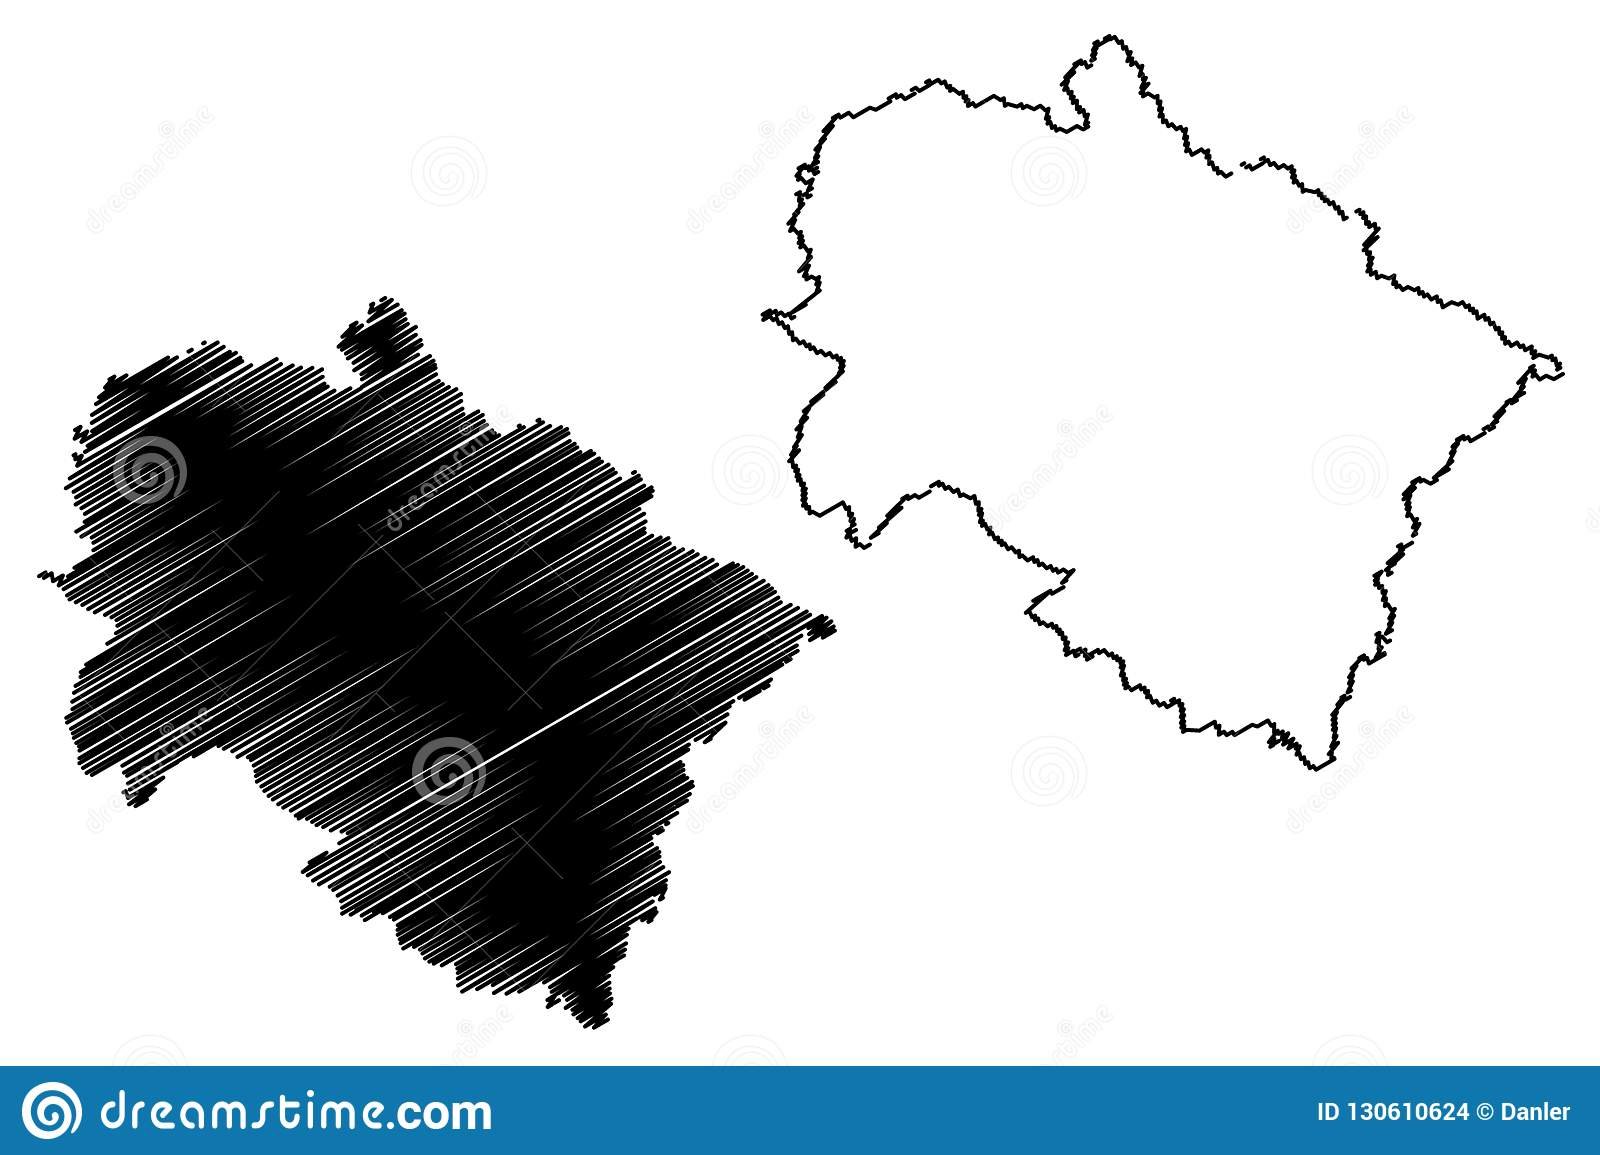 Uttarakhand map vector stock vector. Illustration of ...